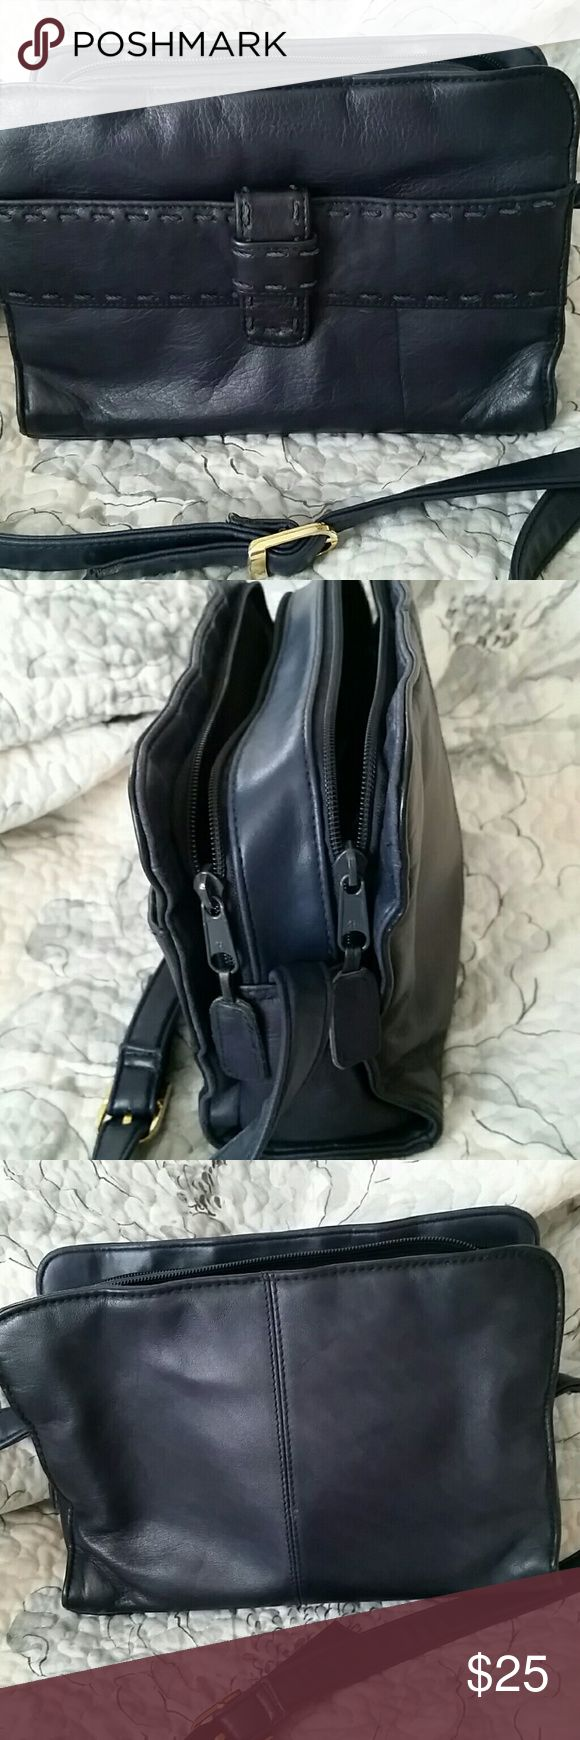 Leather crossbody or shoulder navy Hunt Club purse Navy leather crossbody or shoulder bag purse, soft leather with navy stiching accent, 10 inches wide, 6 inches tall and 3 inches in depth. Long adjusting strap with gold buckle. Small to medium size. Hunt Club Bags Crossbody Bags